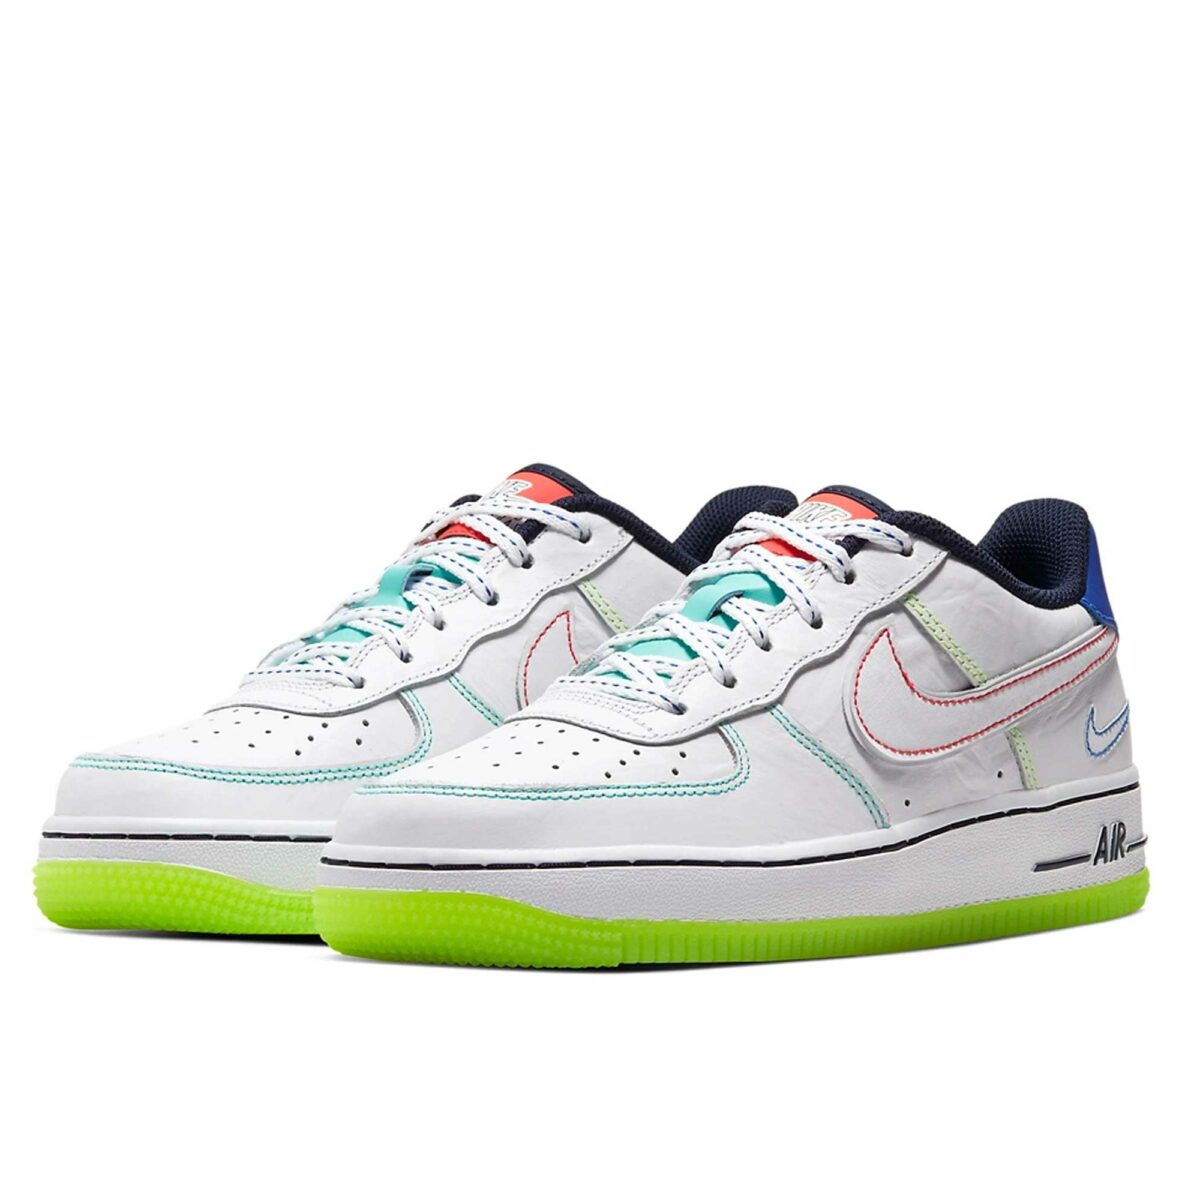 nike air force 1 low gs outside the lines cv2421_100 купить